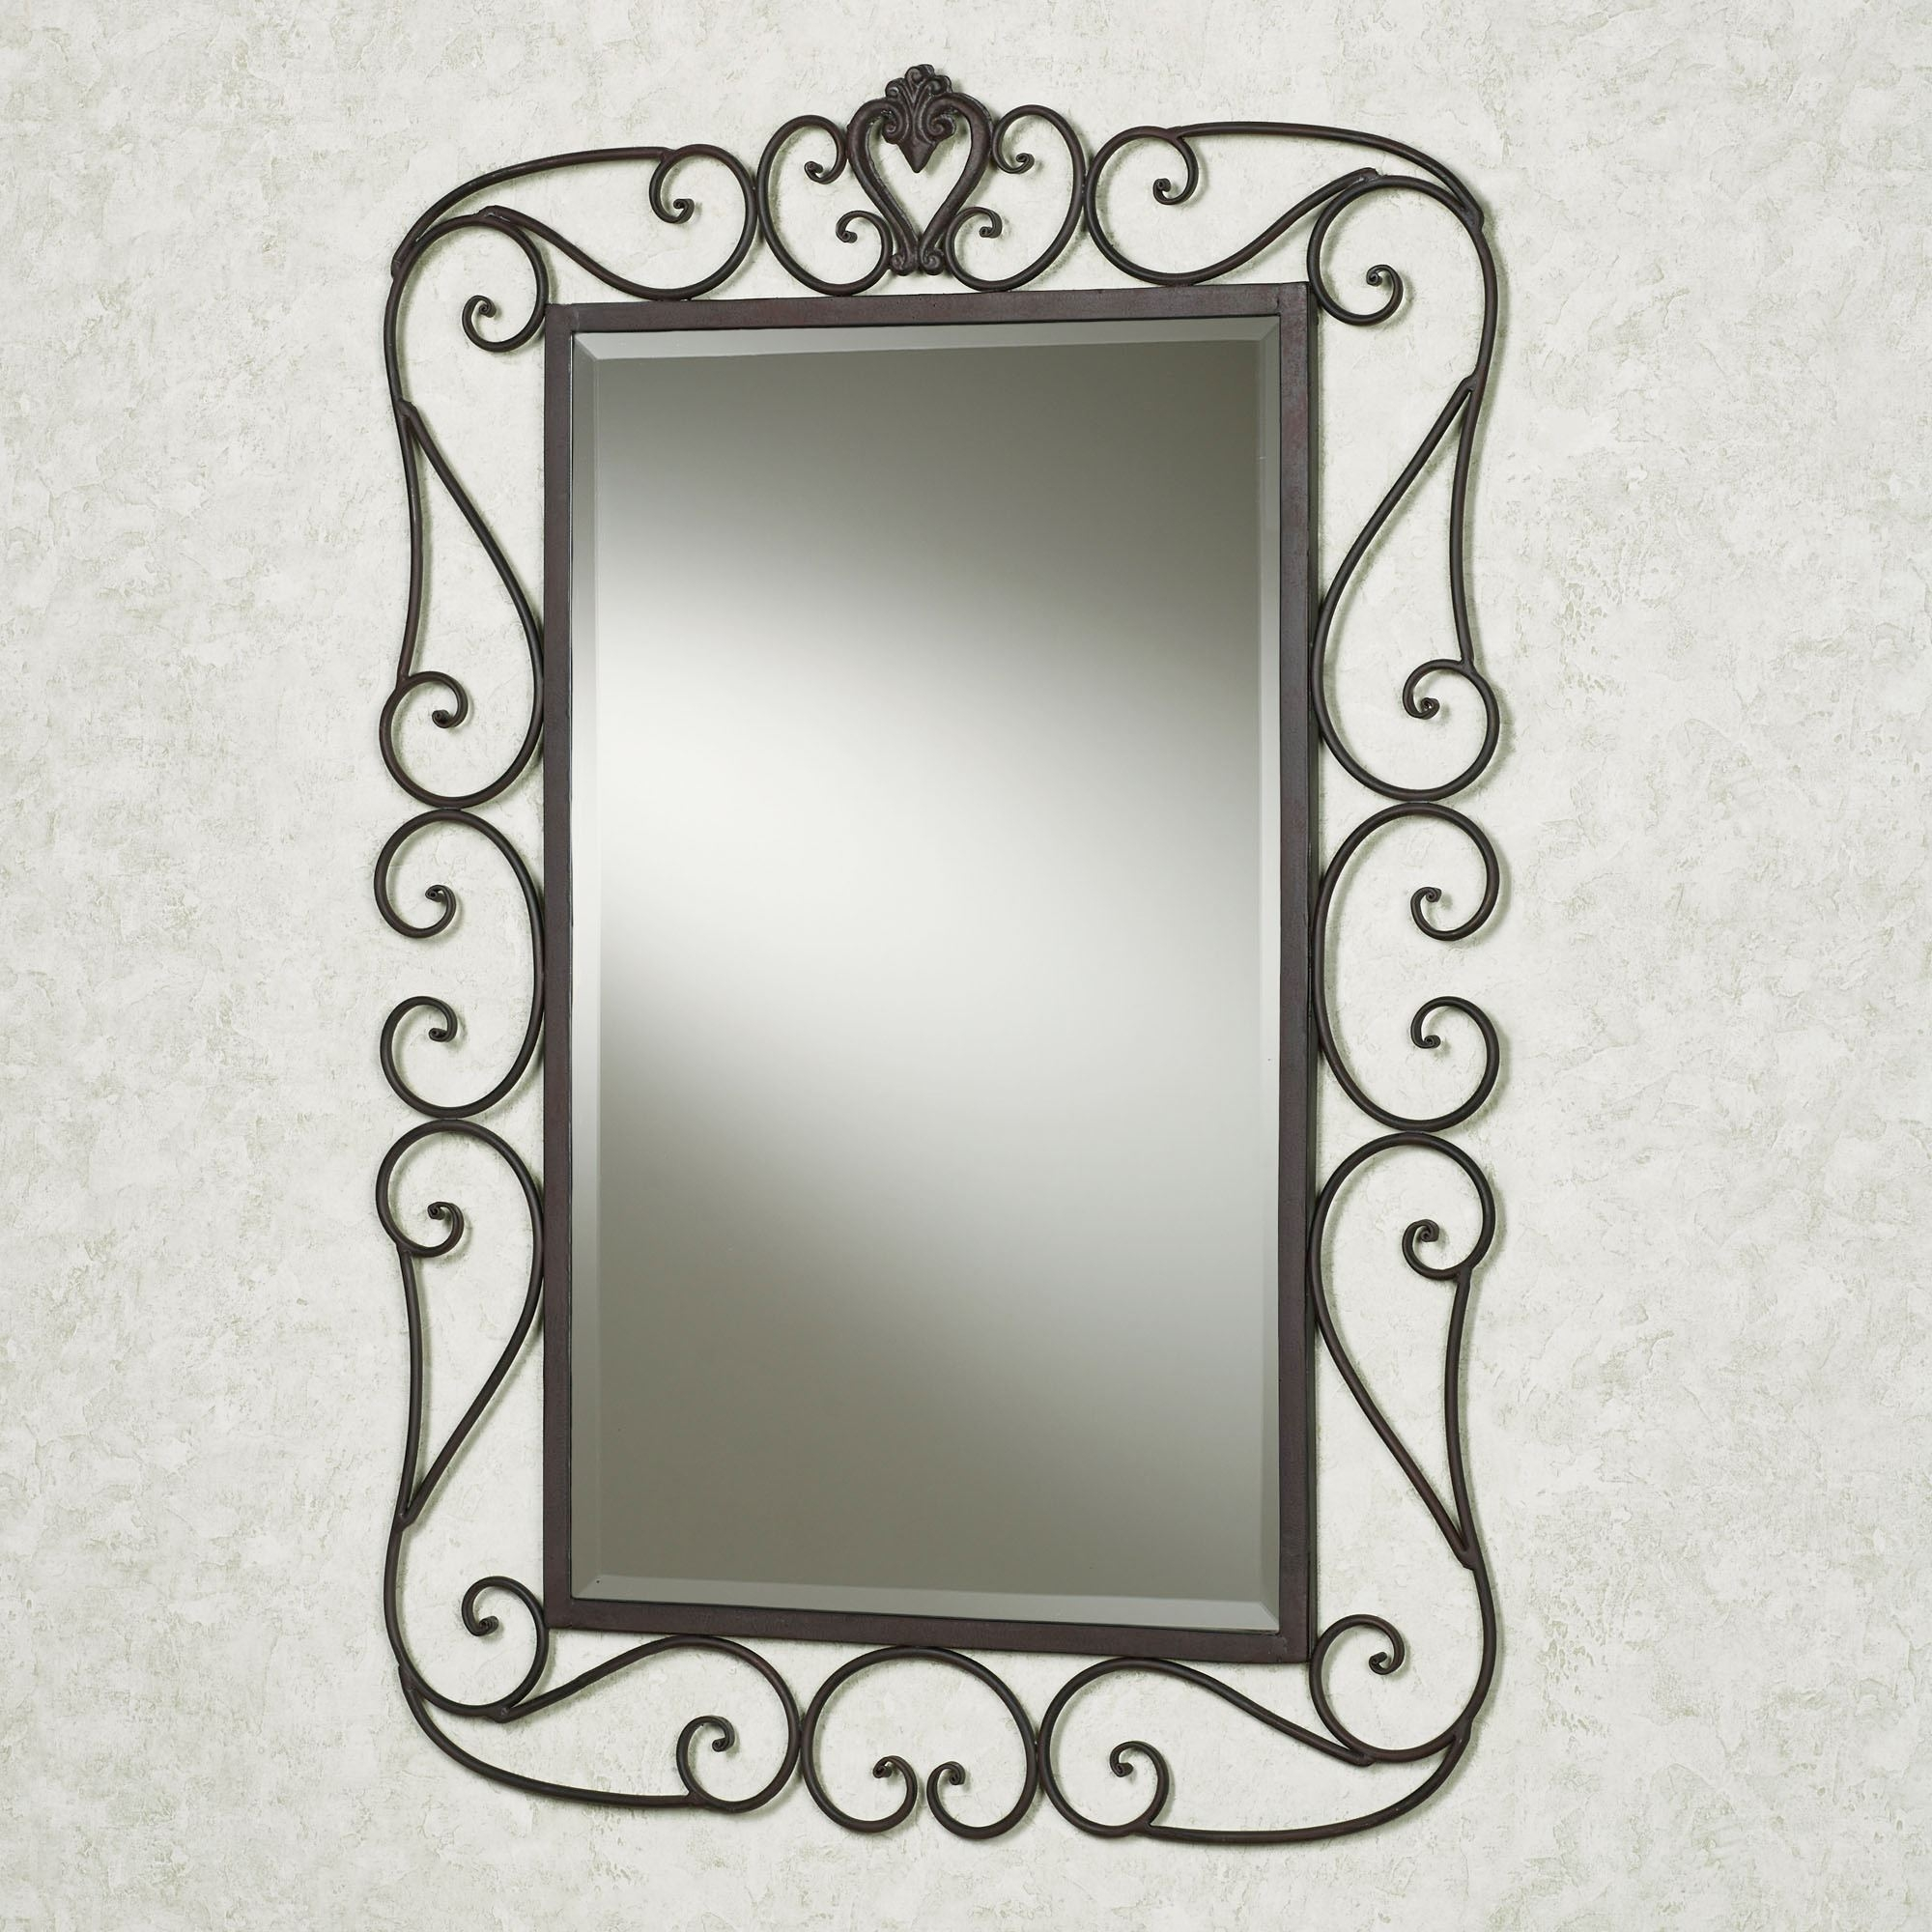 Wrought Iron Wall Mirror Frames